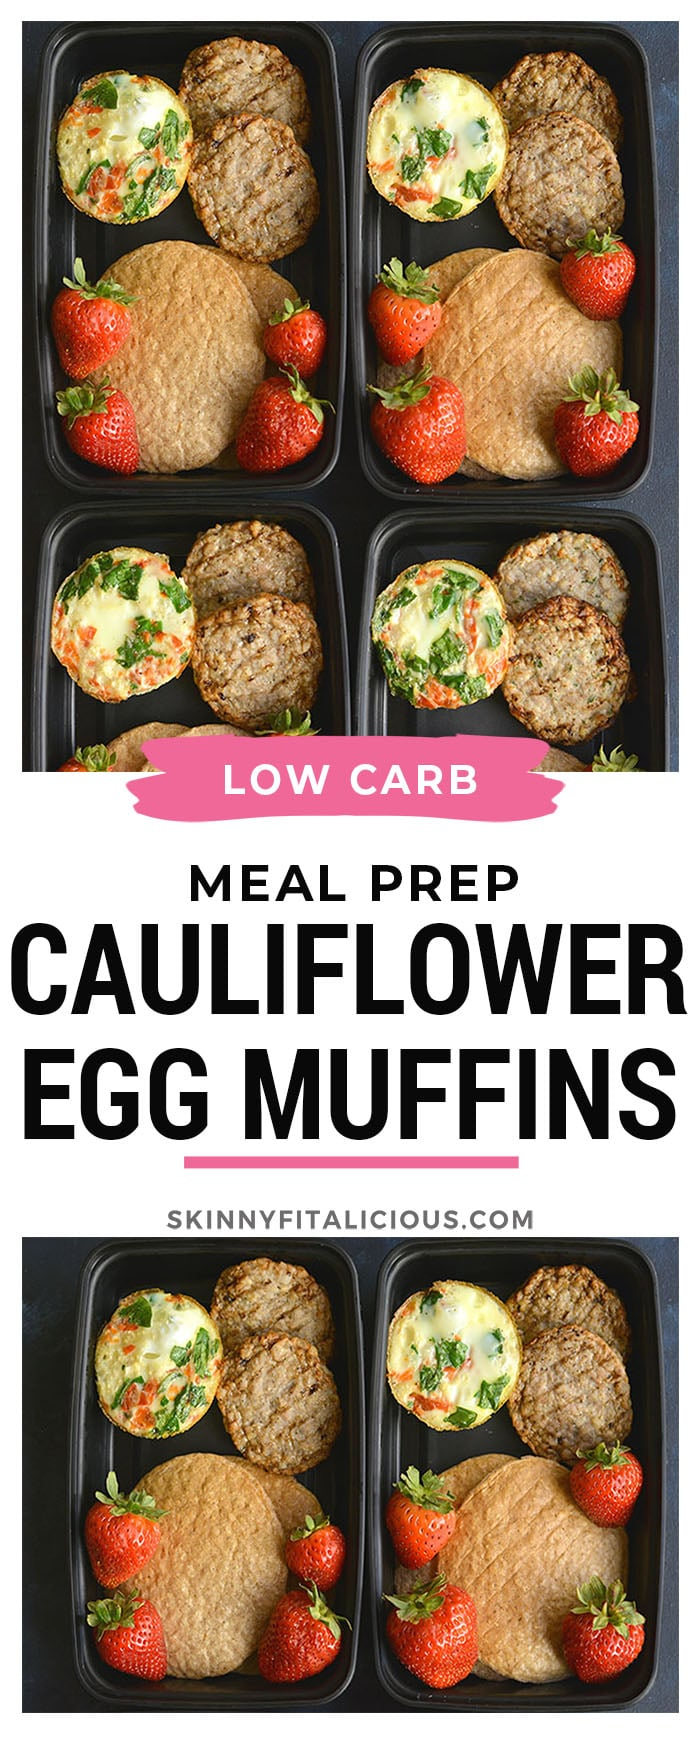 Meal Prep Cauliflower Egg Muffins!Made with cauliflower rice, these eggs have 6 grams of protein and less than 1 gram of carbs. An easy make ahead breakfast! Paleo + Gluten Free + Low Calorie.